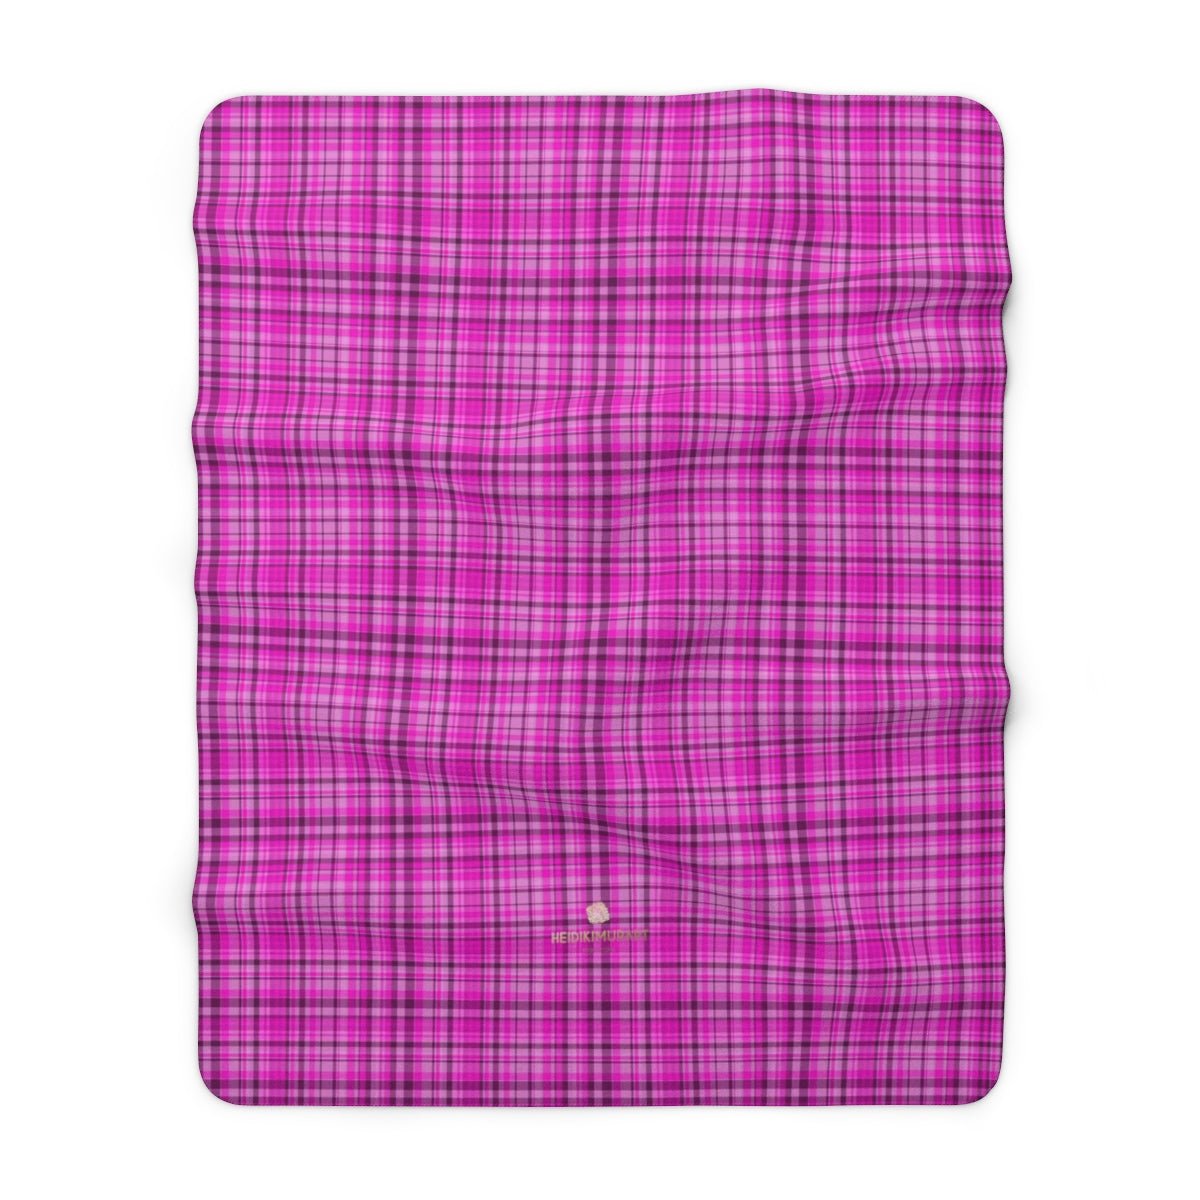 "Pink Tartan Plaid Print Designer Cozy Sherpa Fleece Blanket-Made in USA-Blanket-60"" x 80""-Heidi Kimura Art LLC"